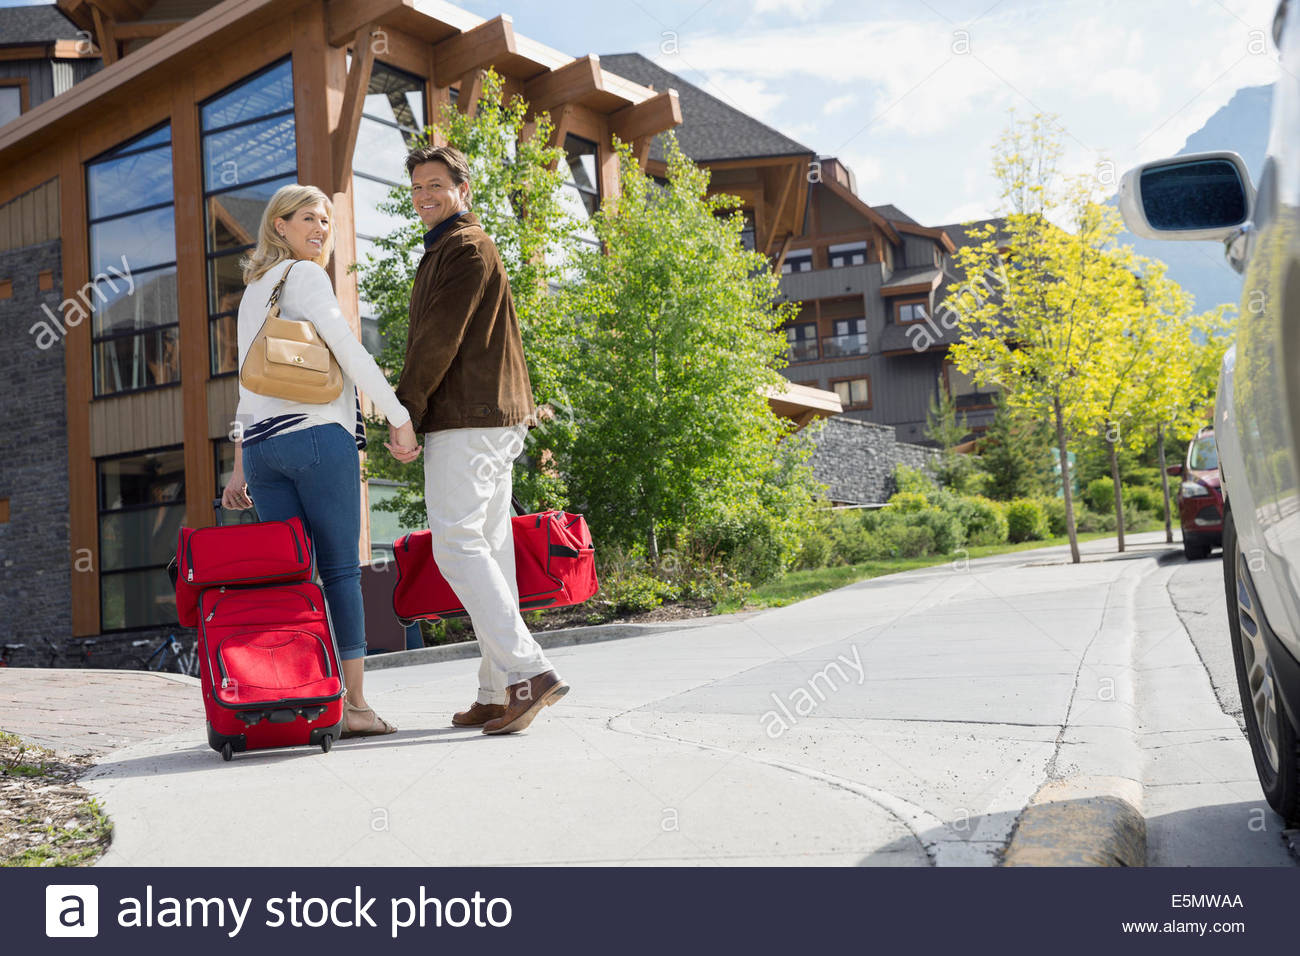 Couple with luggage arriving at hotel - Stock Image